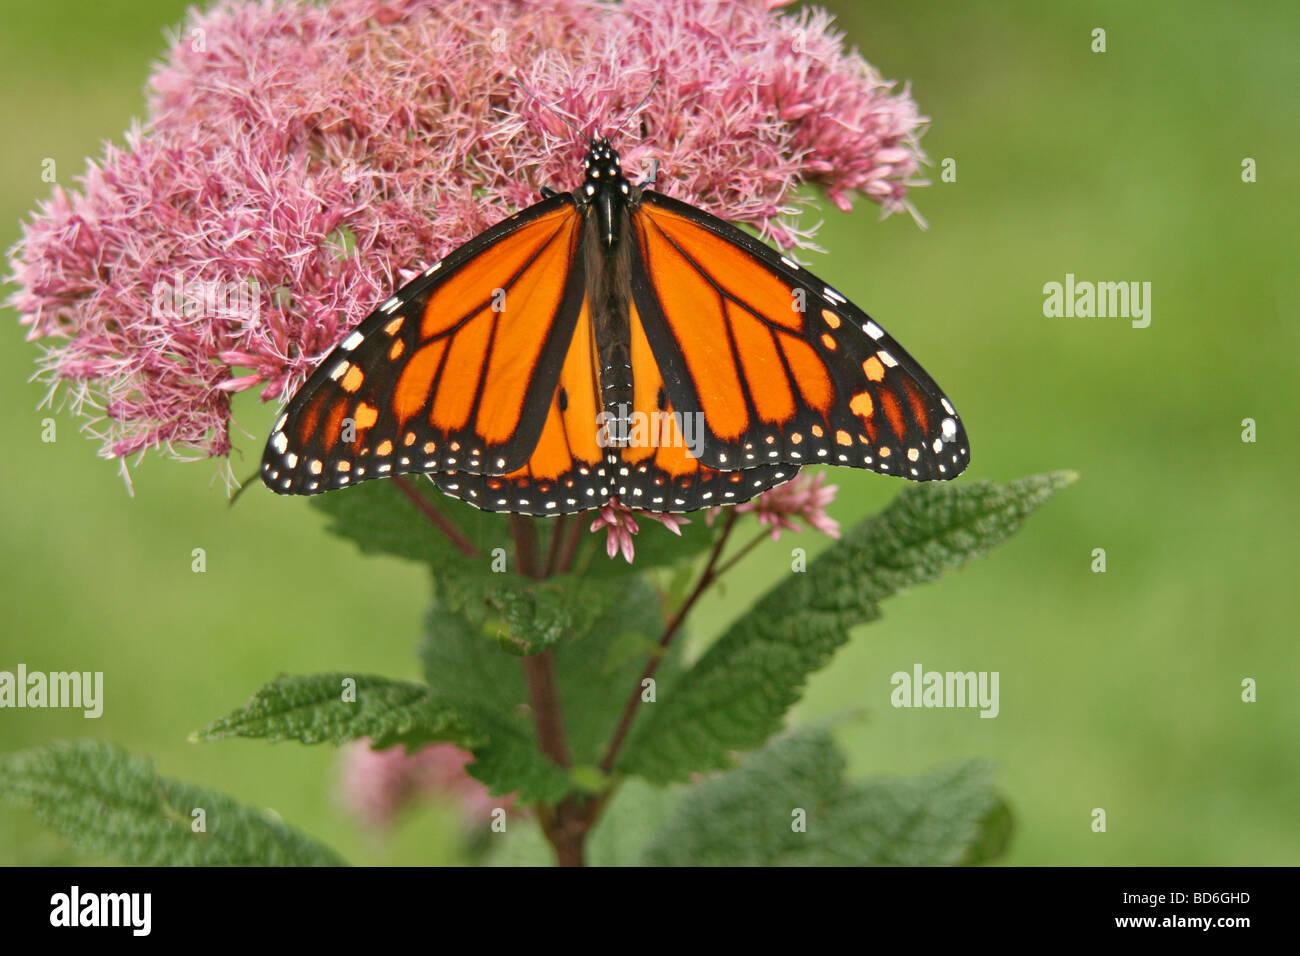 Monarch butterfly on Joe-pye-weed - Stock Image